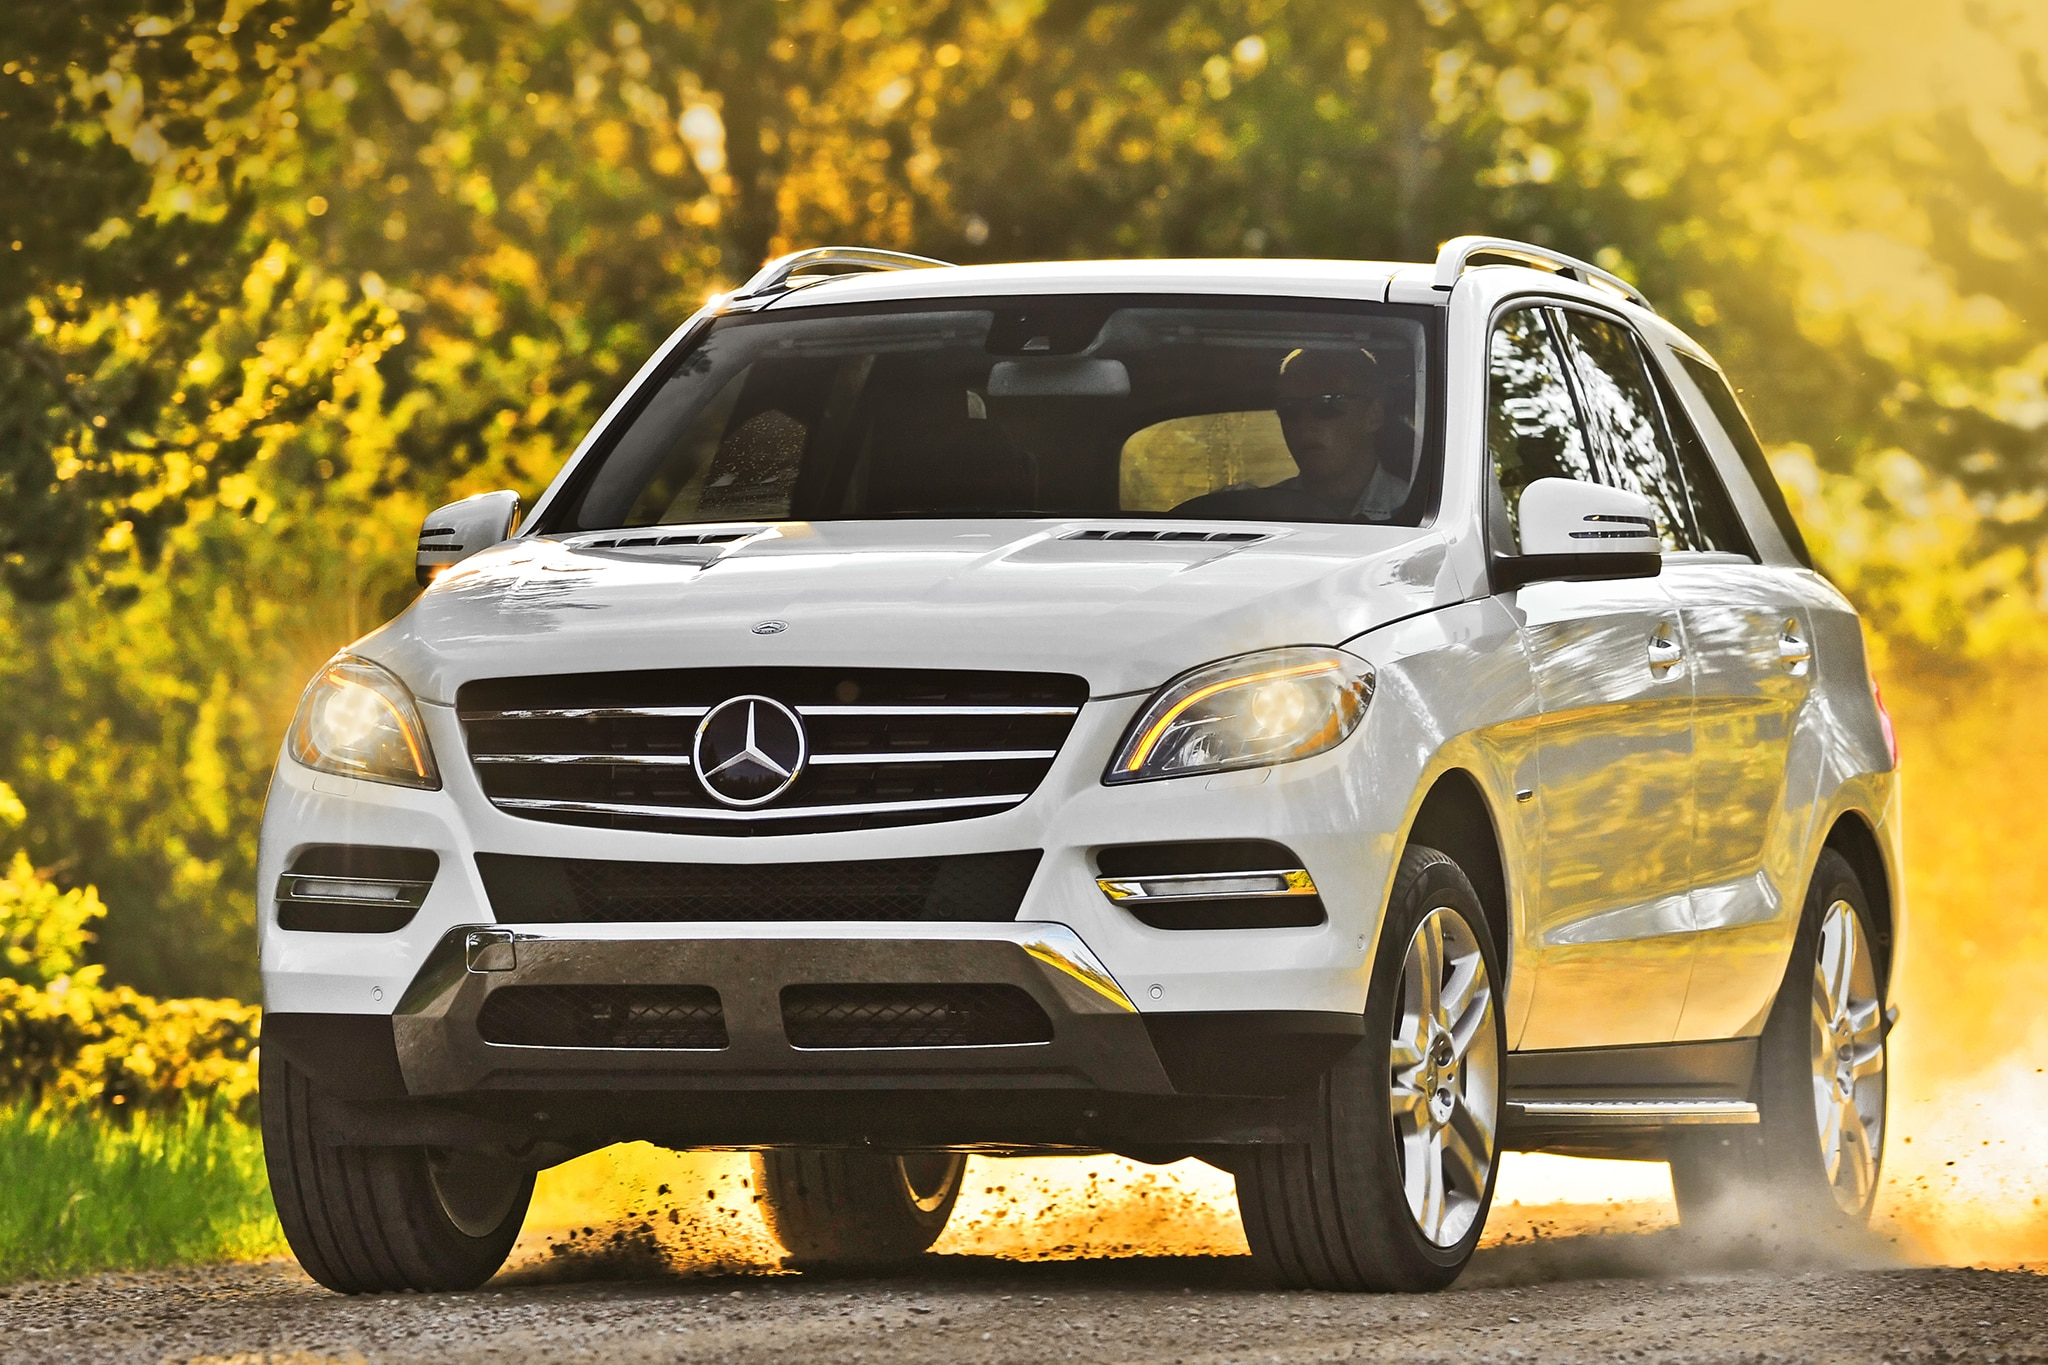 2014 Mercedes Benz ML350 BlueTEC 4MATIC Front End In Motion Offroad1